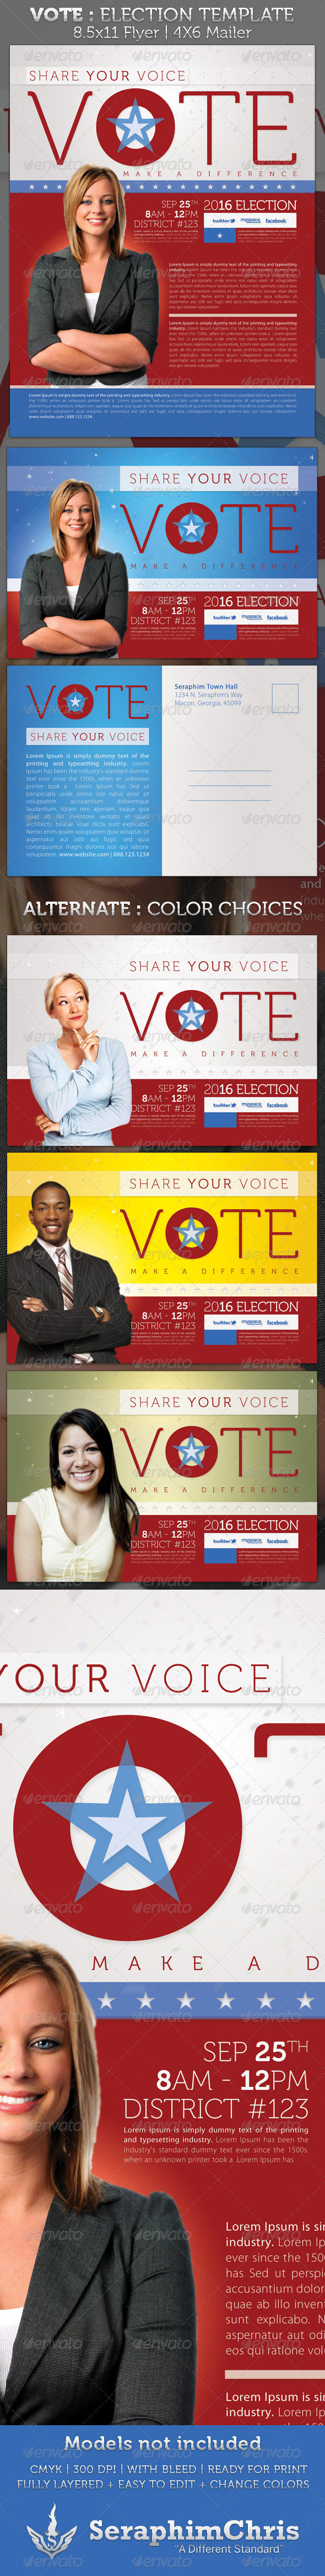 GraphicRiver Vote Election Full Page and Mailer Template 1870457